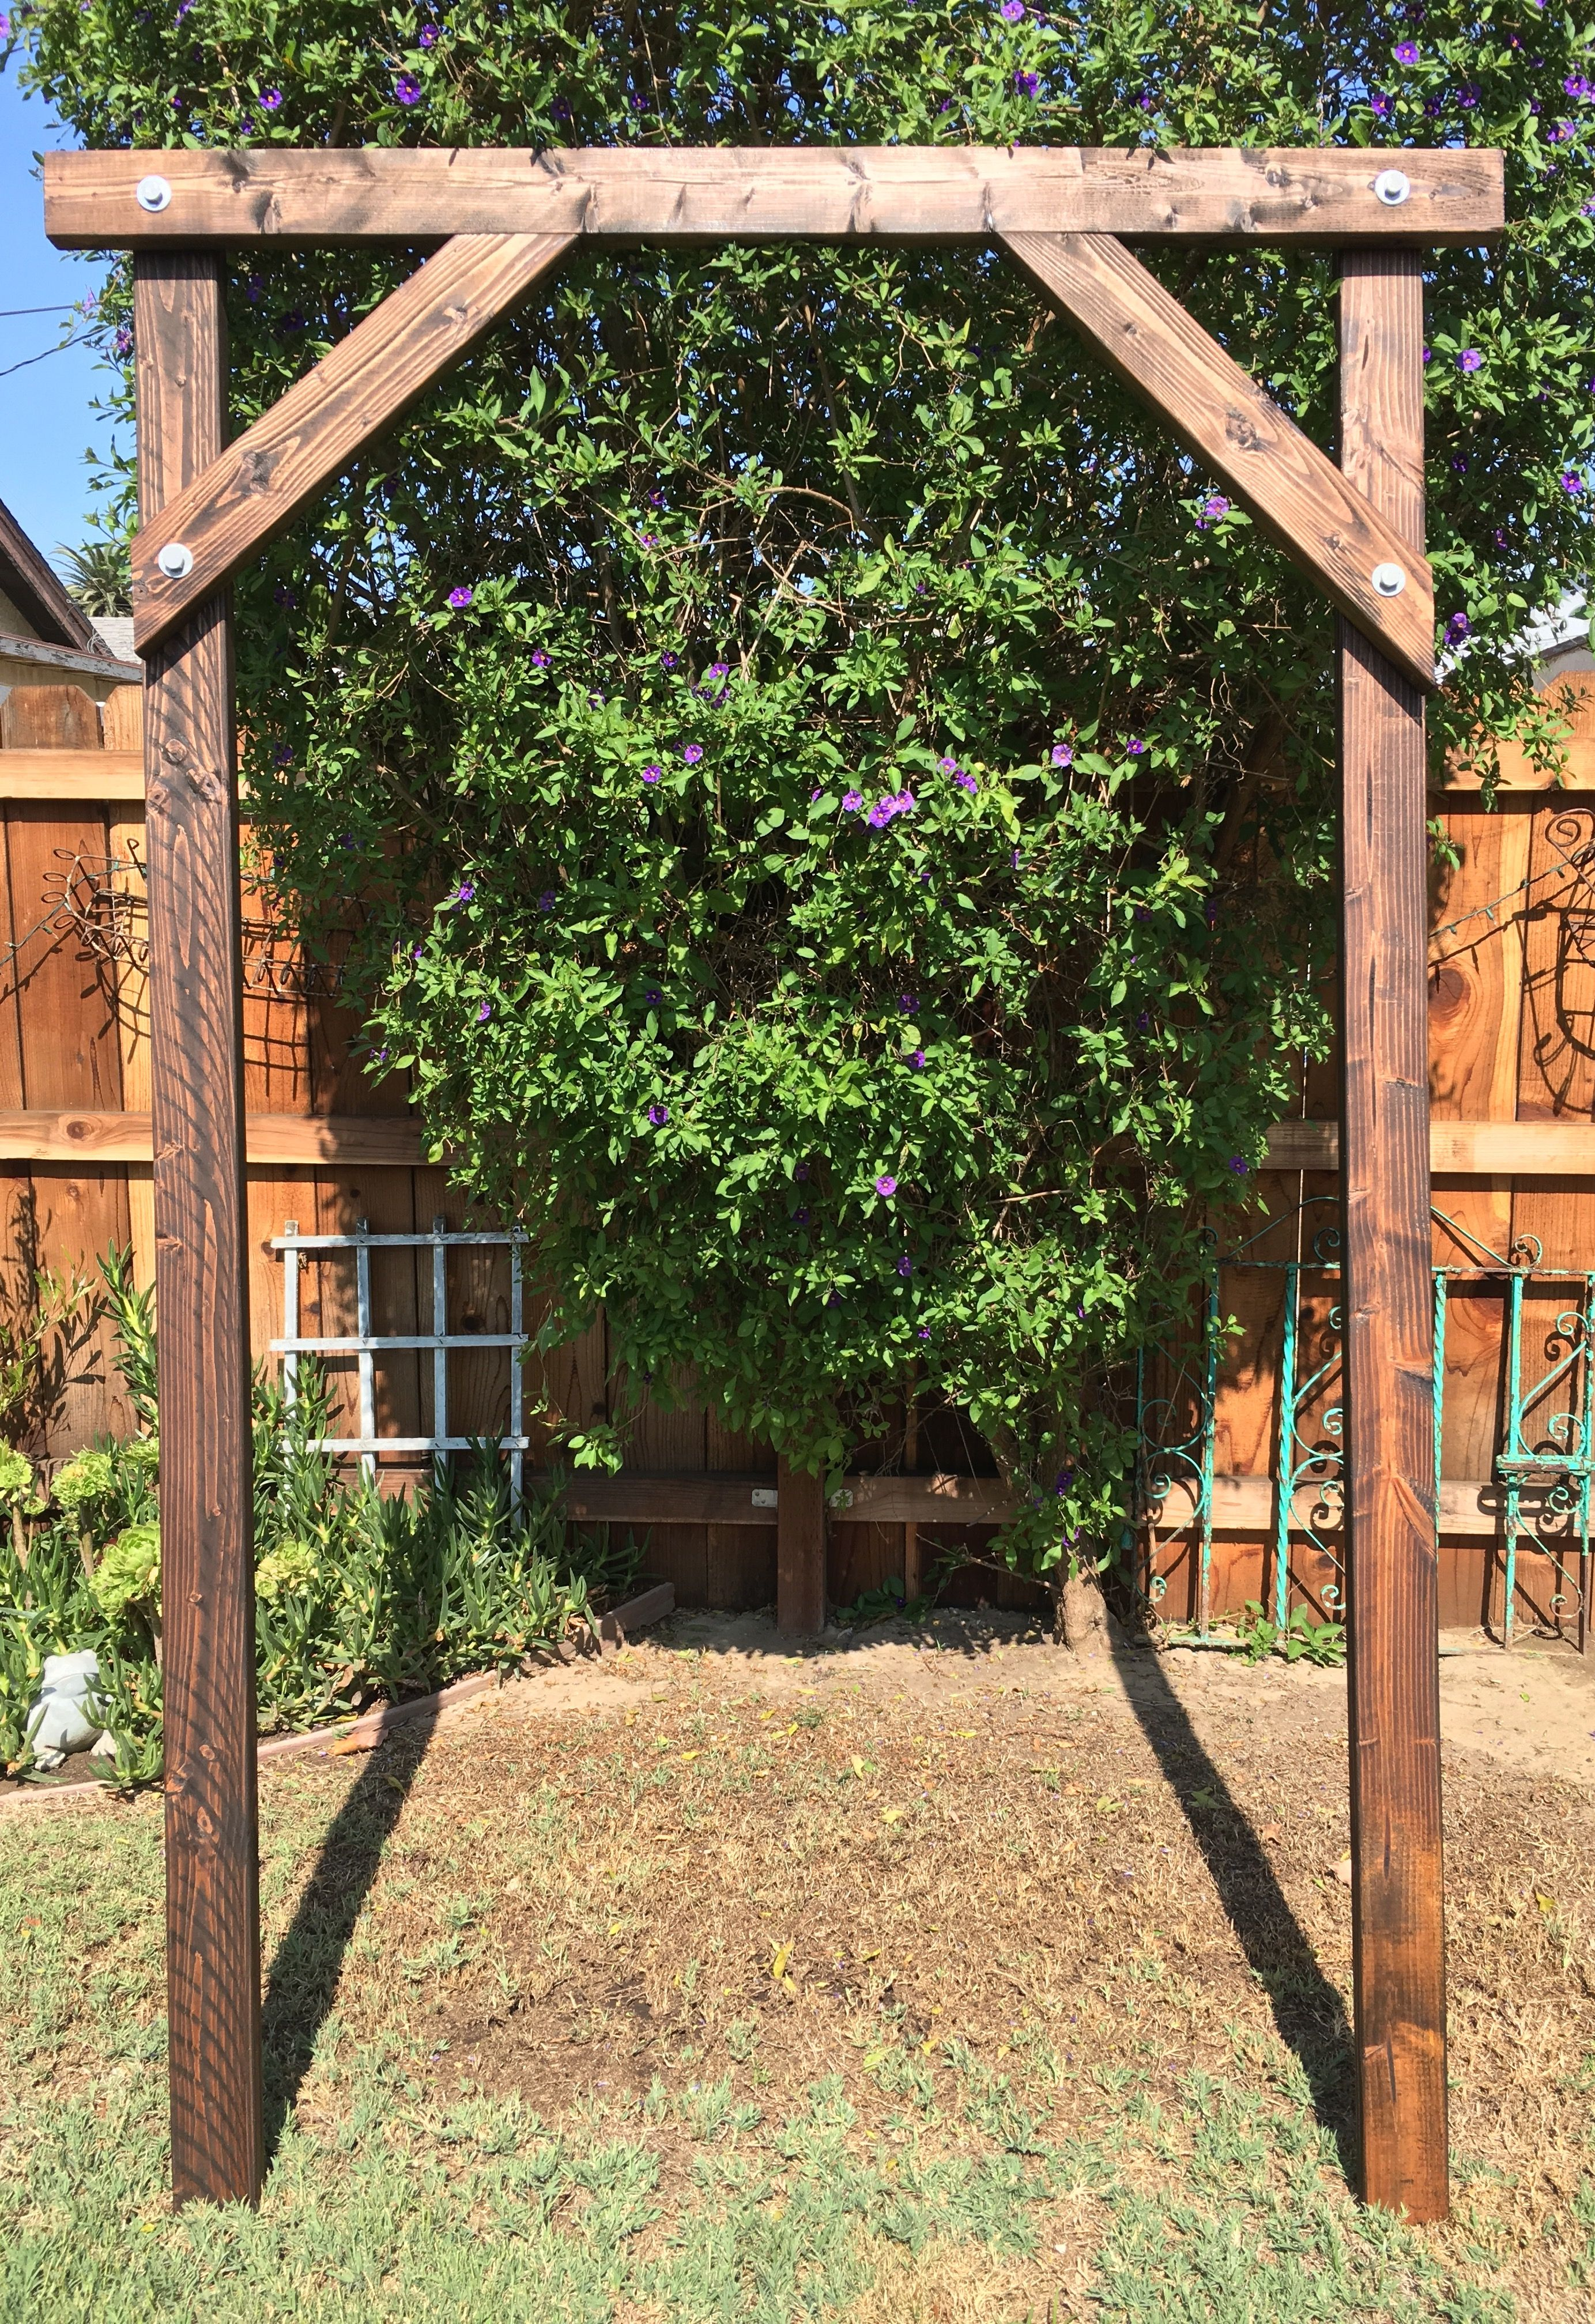 Rustic Wood Arbor Adorn with lights florals and fabric